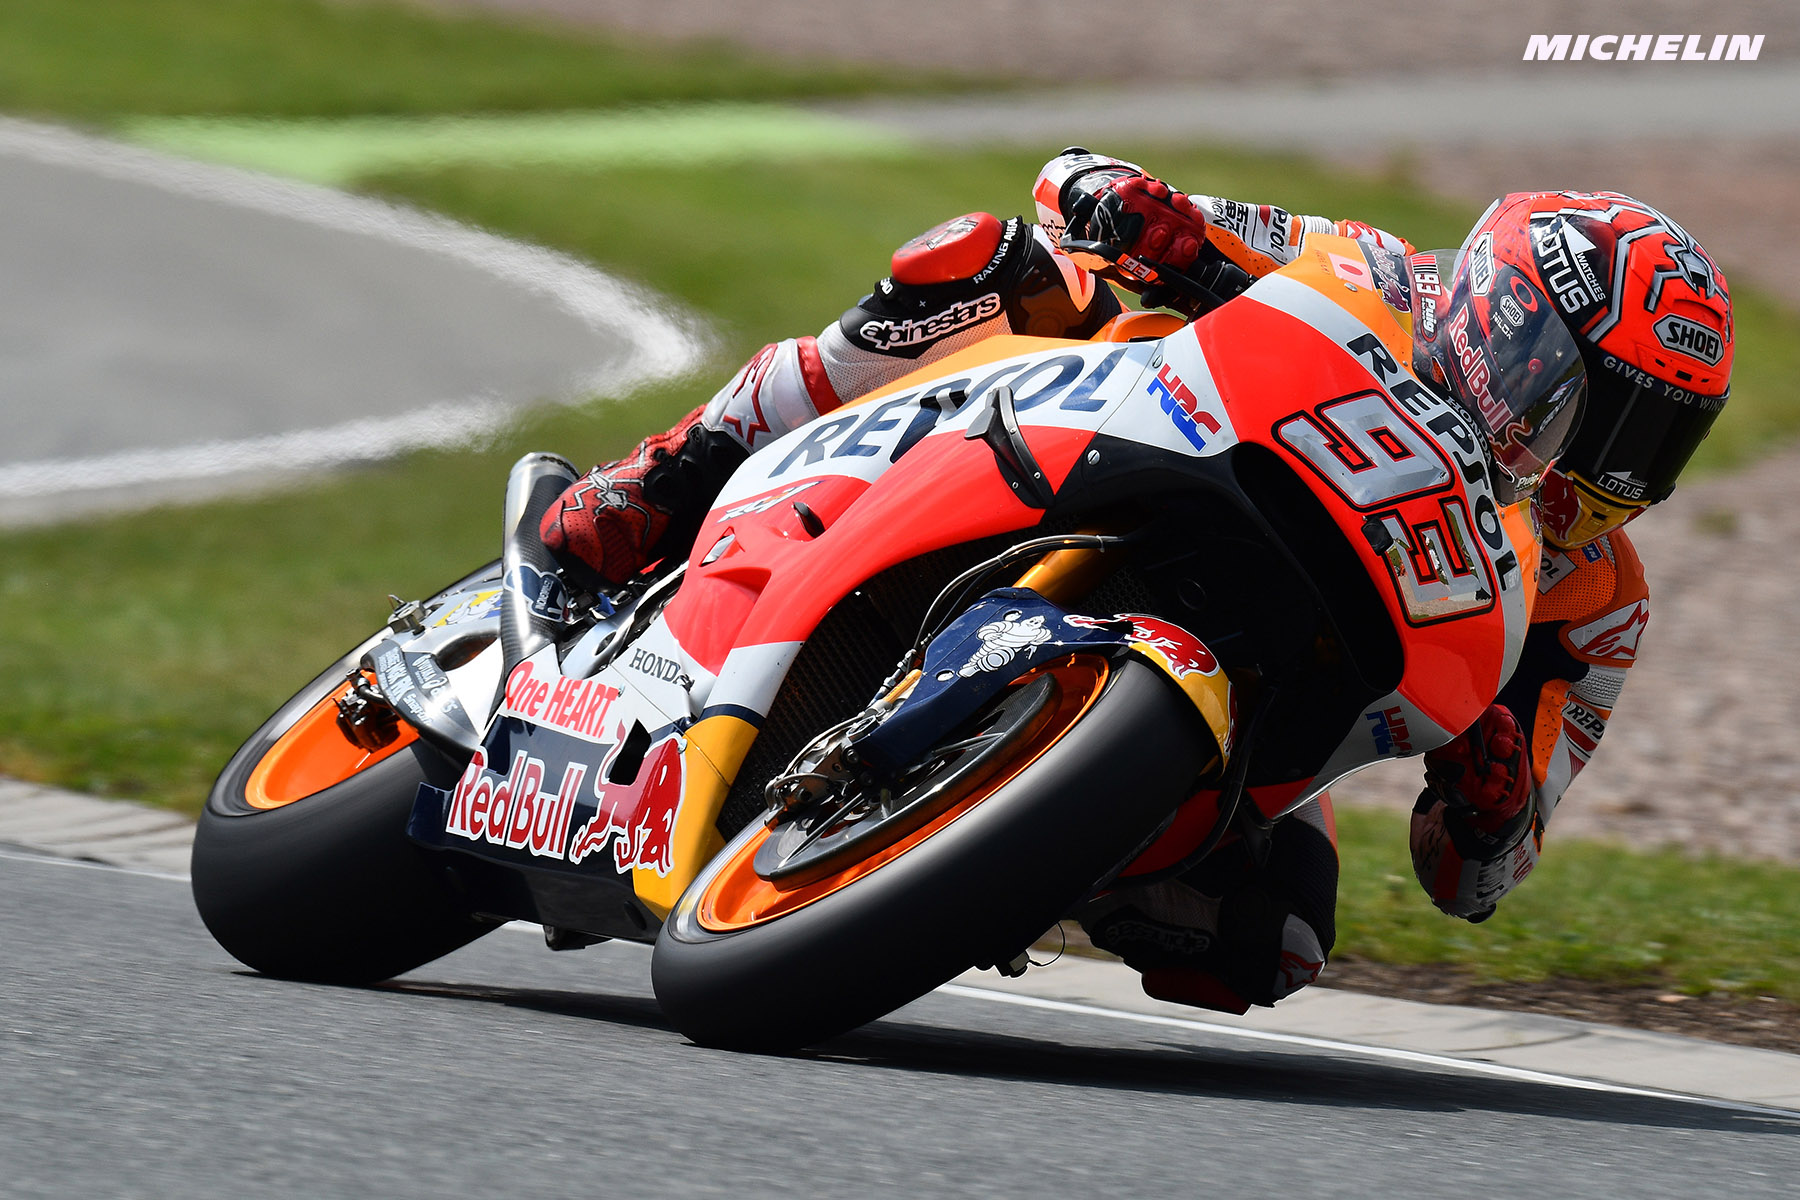 MotoGP Machines Return to the Track on Wednesday